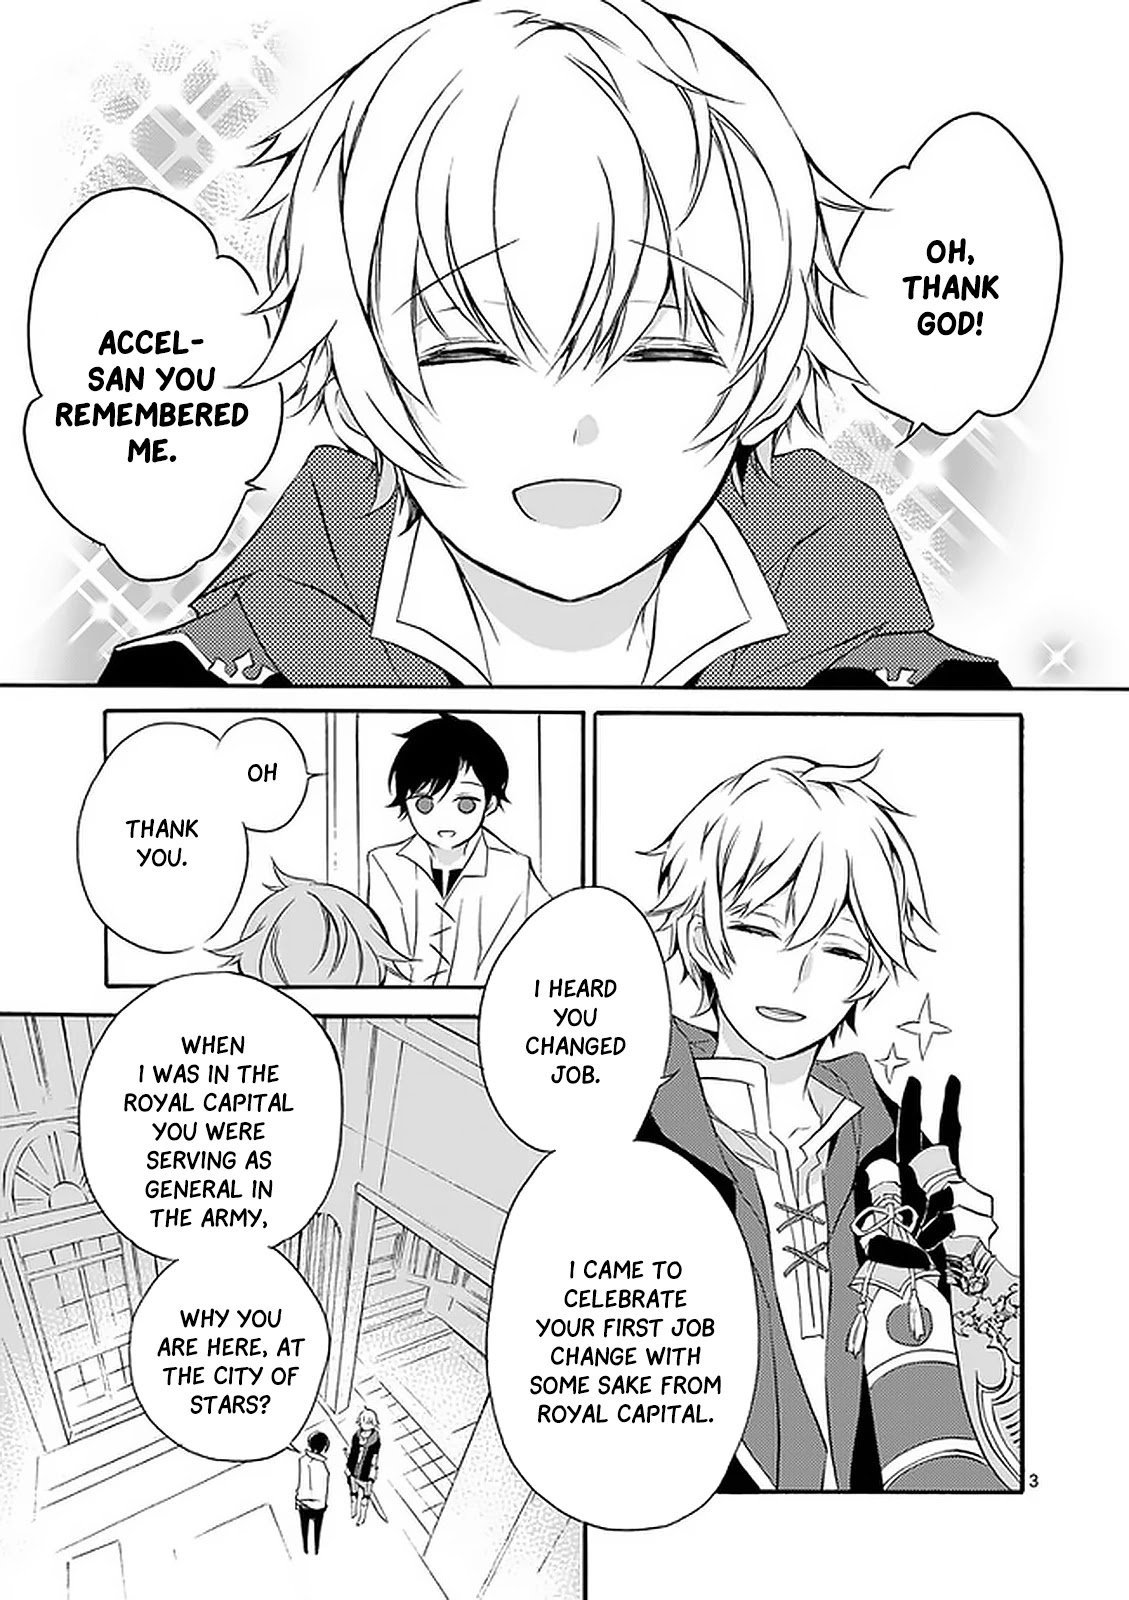 Manga From The Strongest Job of Dragon Knight, To The Beginner Job Carrier, Somehow, I Am Dependent On The Heroes - Chapter 2 Page 4